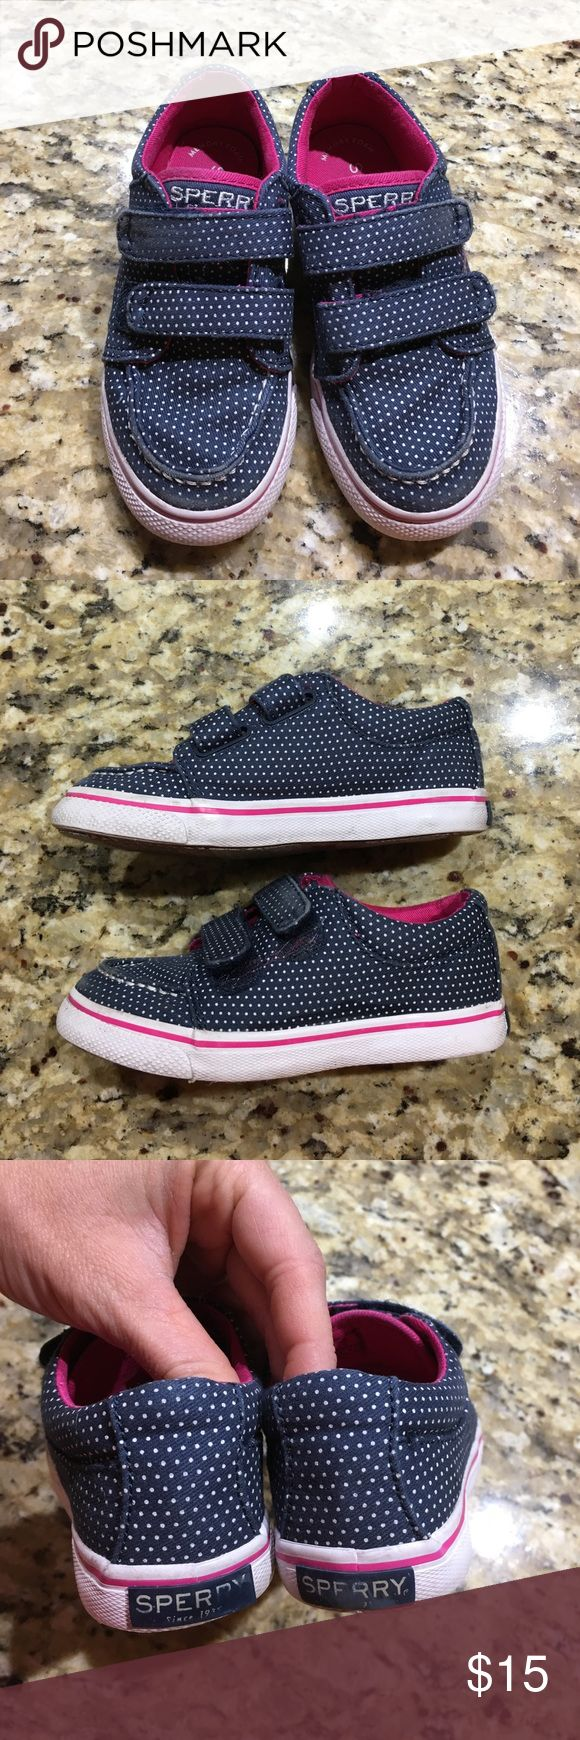 Toddler Sperrys 💕 Size 9 WIDE :) Good condition! Some wear on the tips and on the straps. Only worn a handful of times :) Sperry Top-Sider Shoes Sneakers